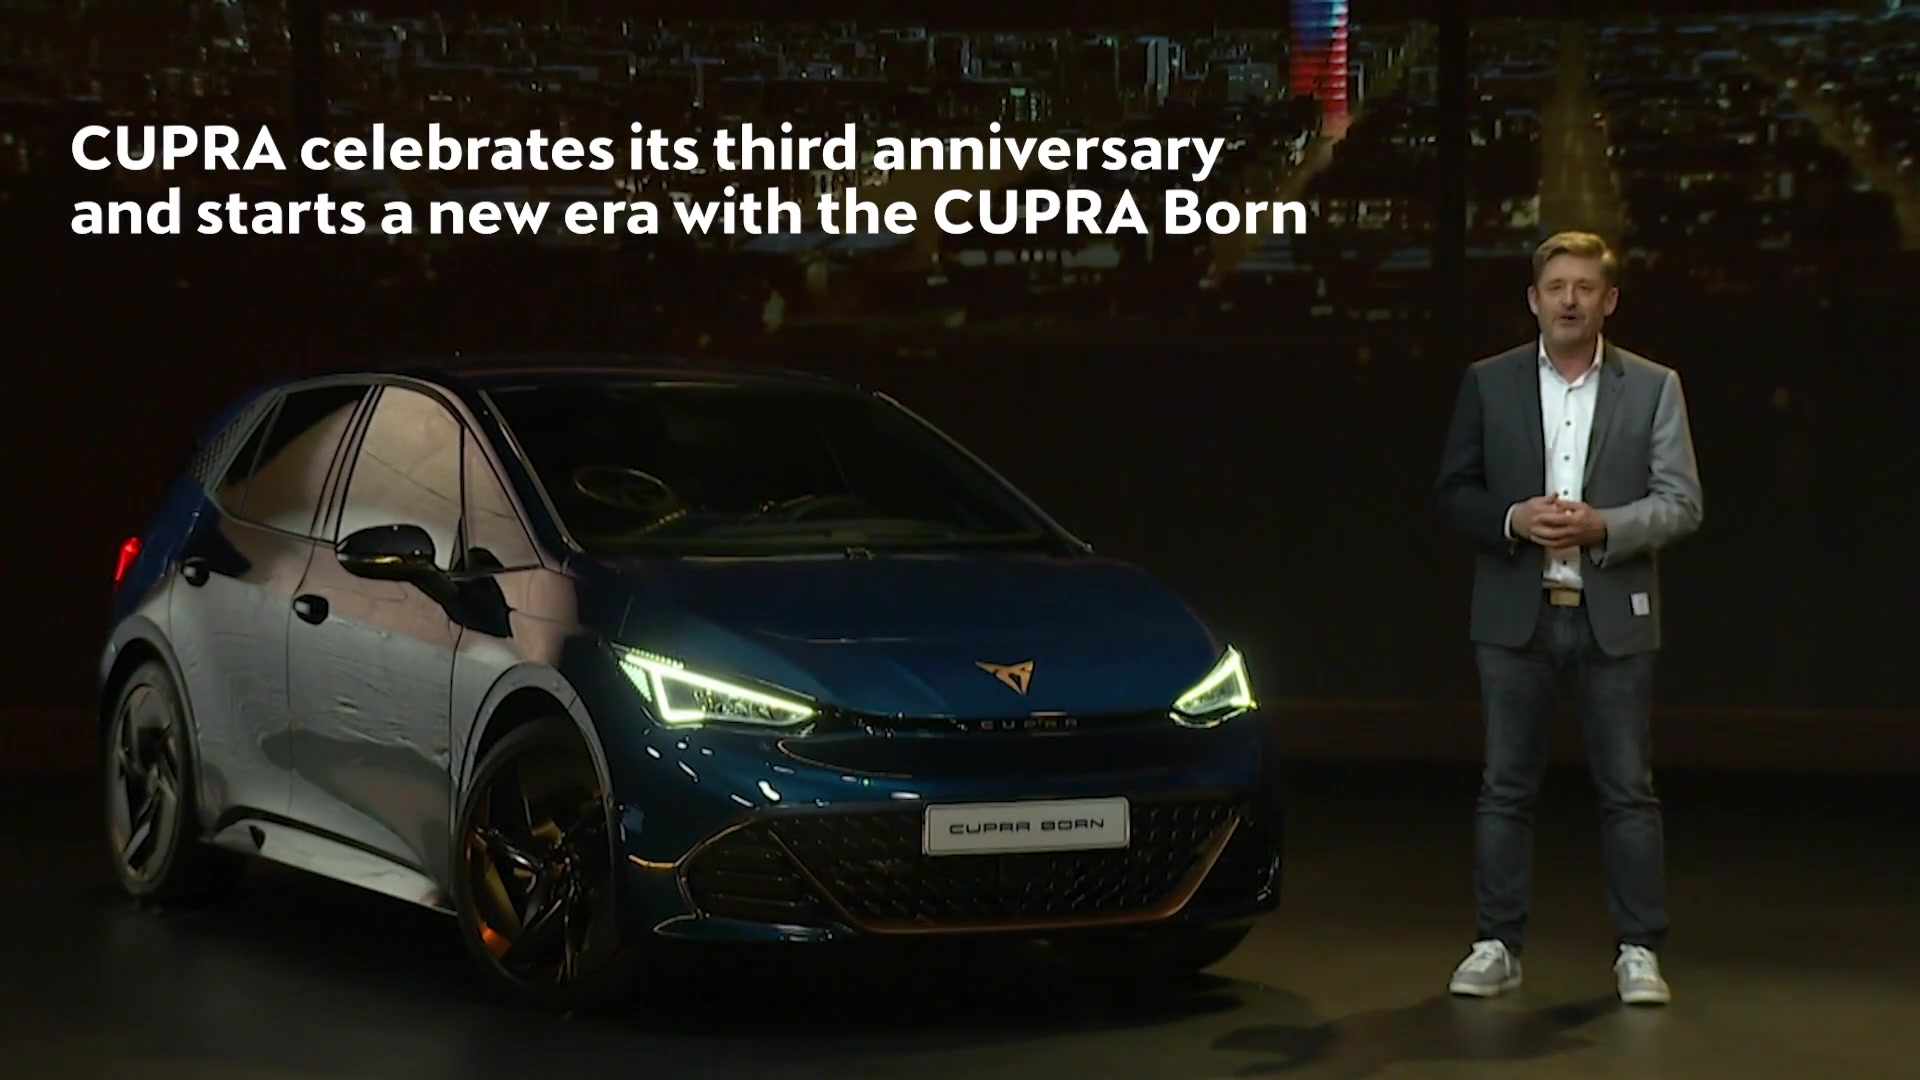 CUPRA celebrates its third anniversary and starts a new era with the CUPRA Born